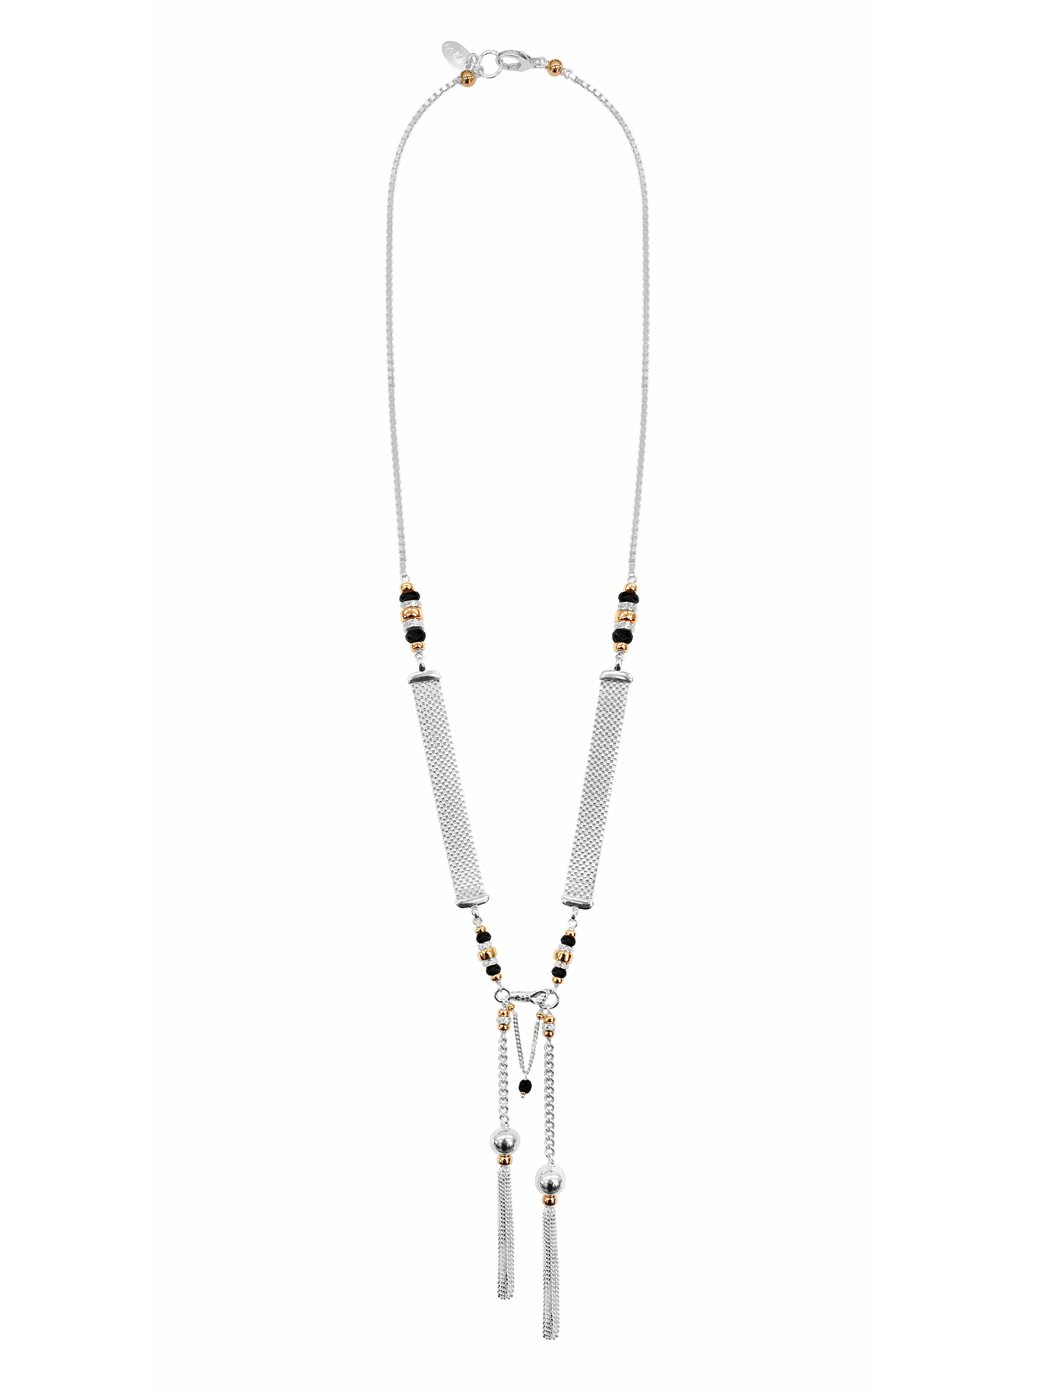 Harlow Noir Necklace -Onyx